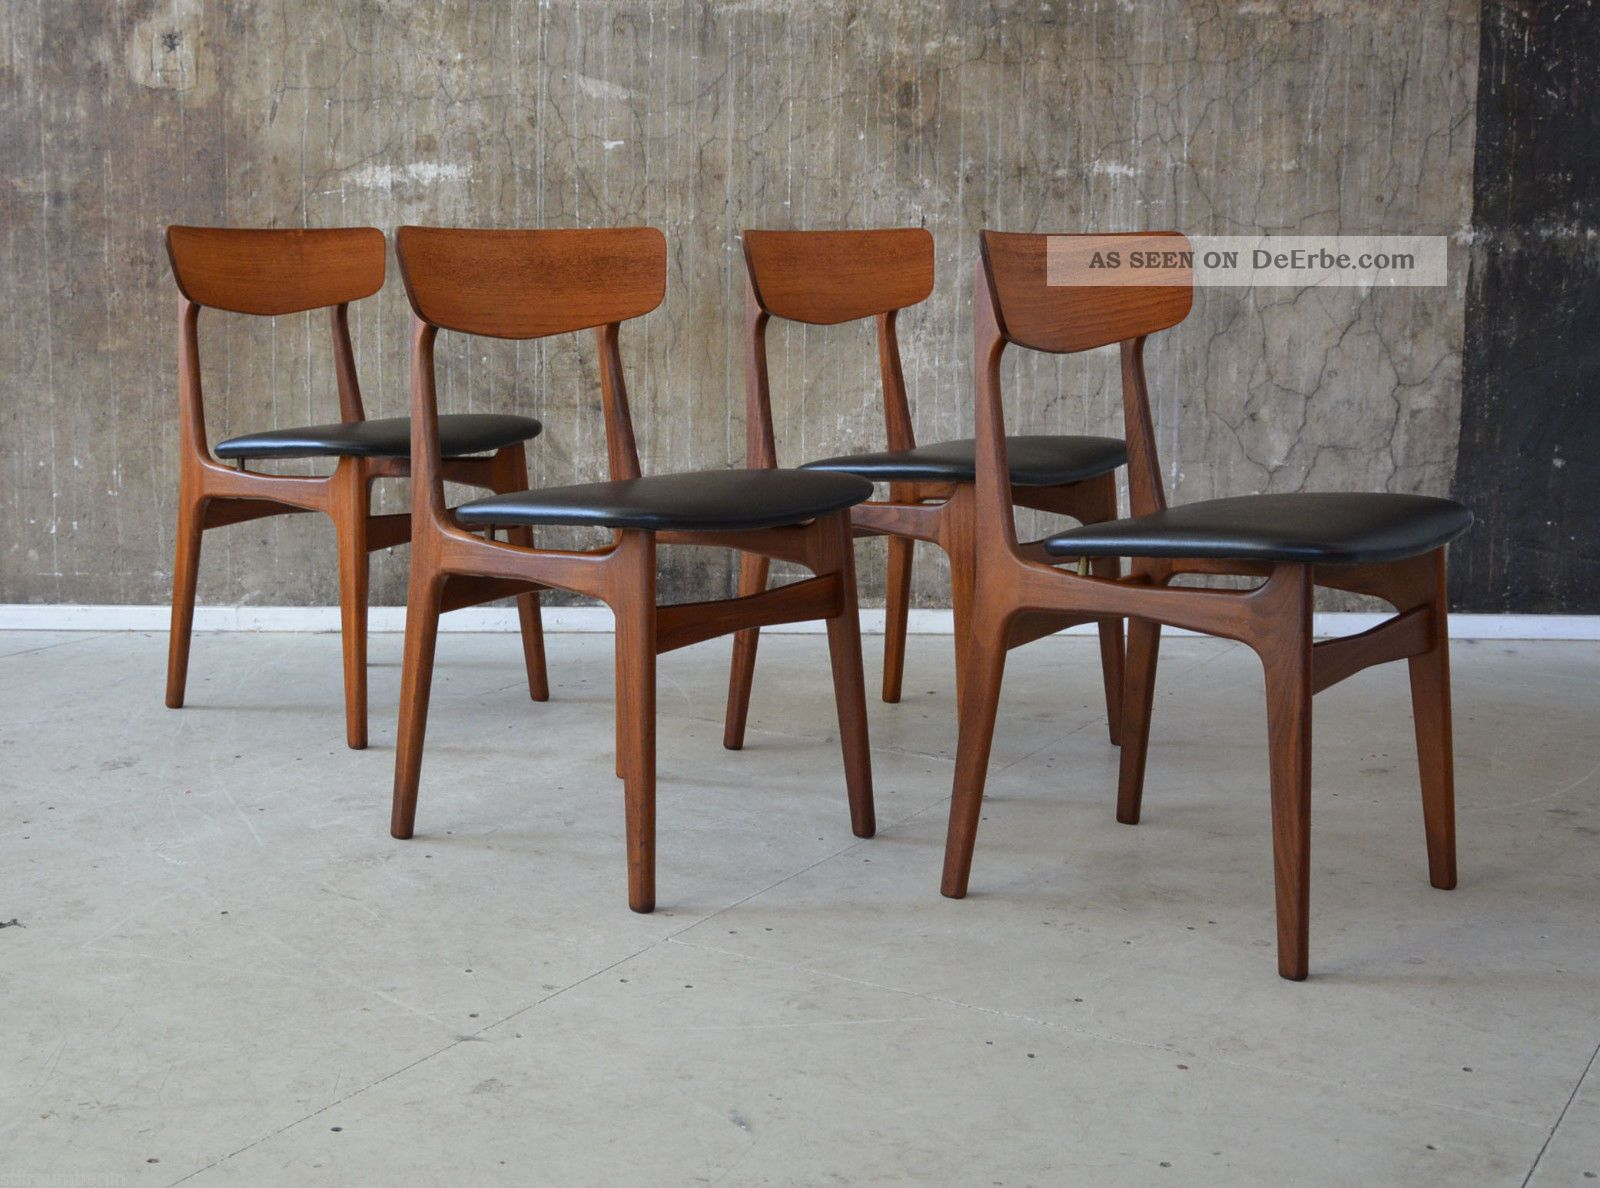 4 x 60er teak st hle esszimmerst hle danish design 60s dining chairs wegner ra. Black Bedroom Furniture Sets. Home Design Ideas